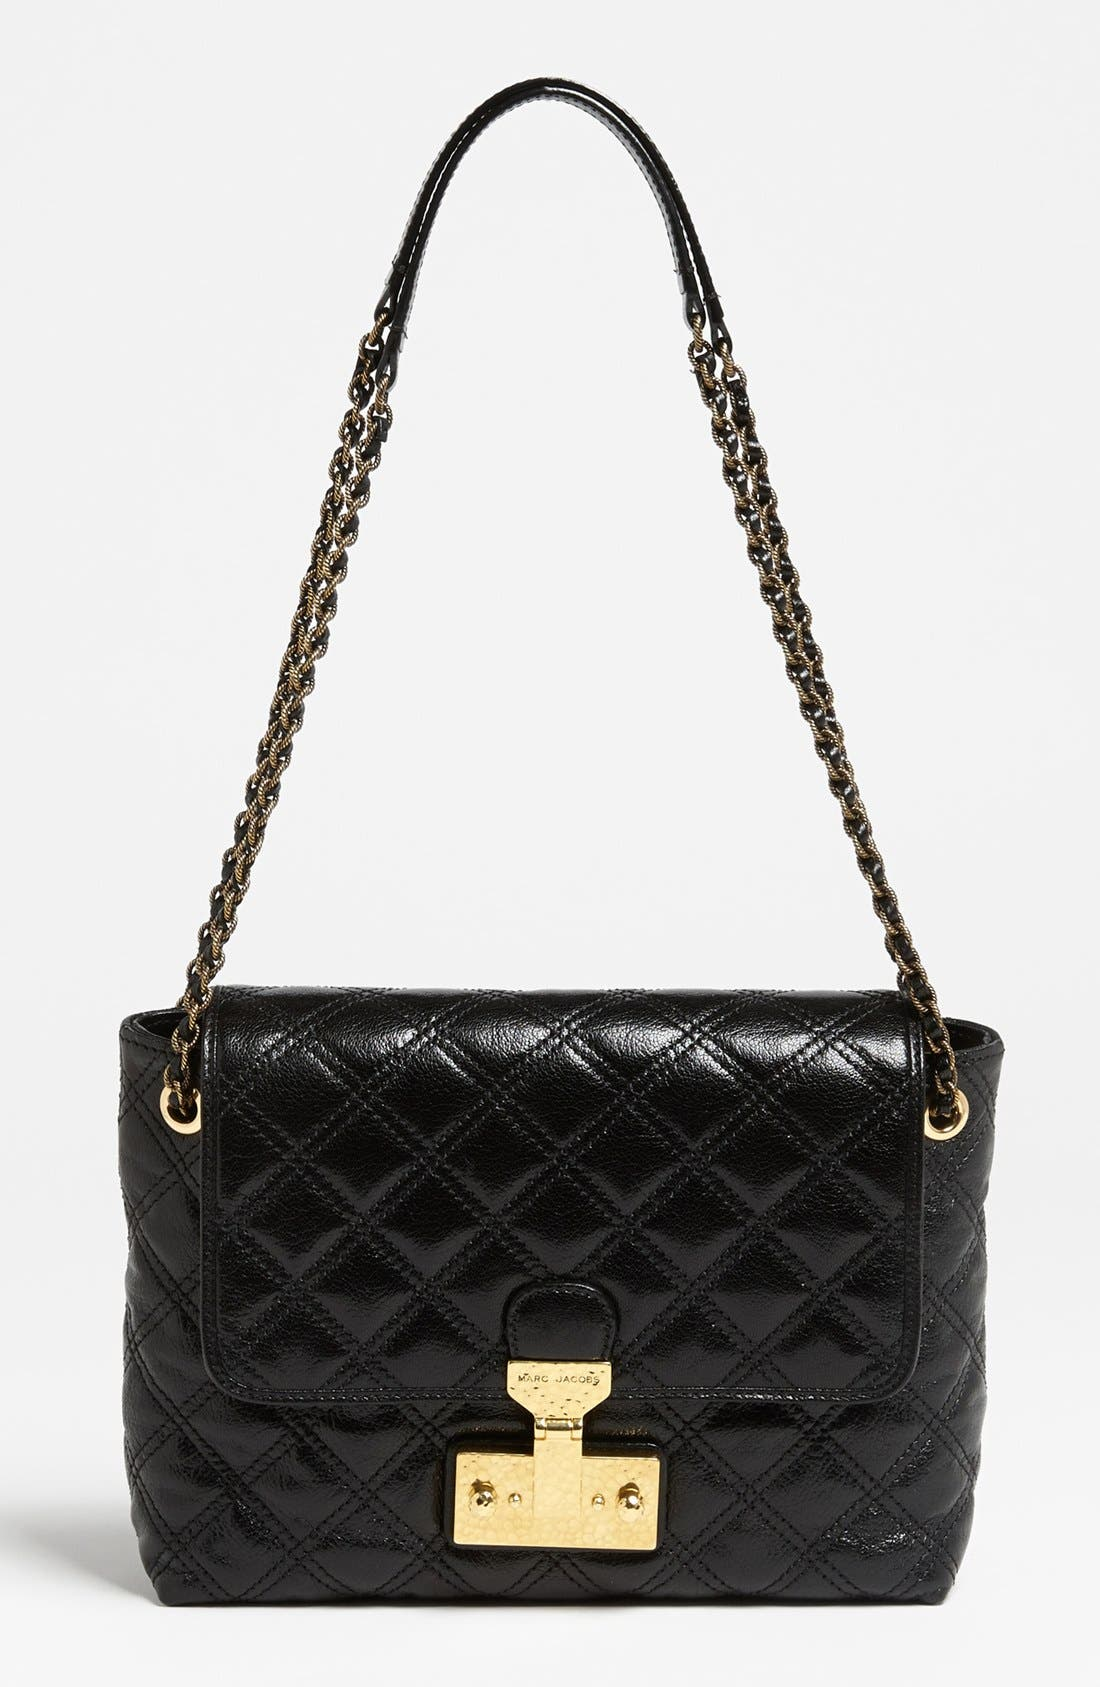 Alternate Image 1 Selected - MARC JACOBS 'Baroque Single - Large' Leather Shoulder Bag